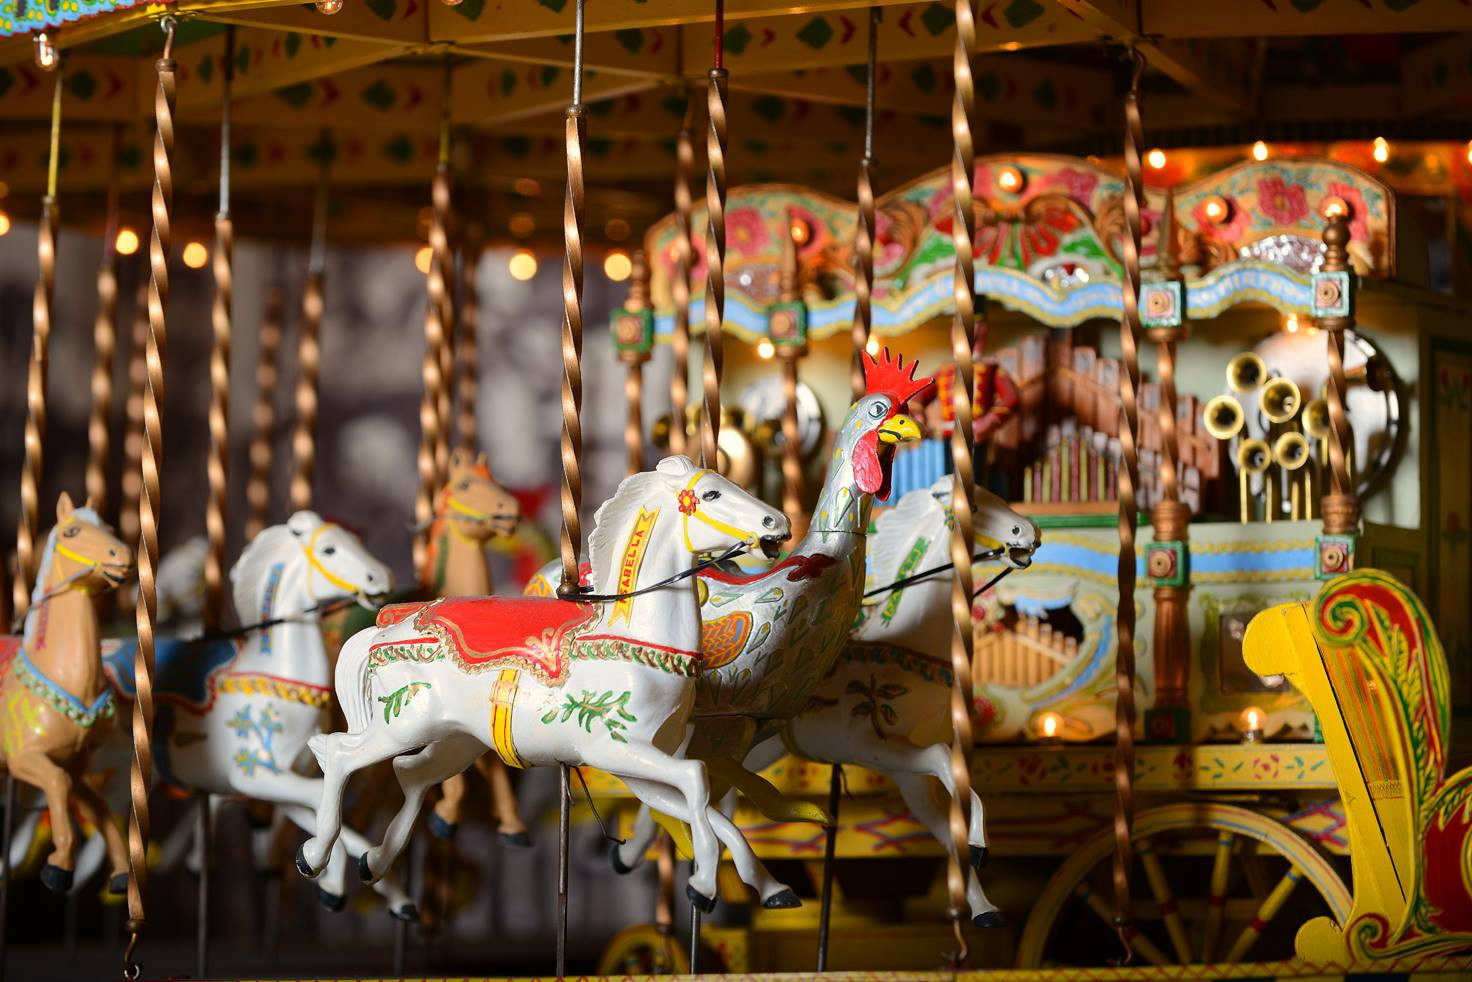 A close up photo of a model Savage's Carousel.